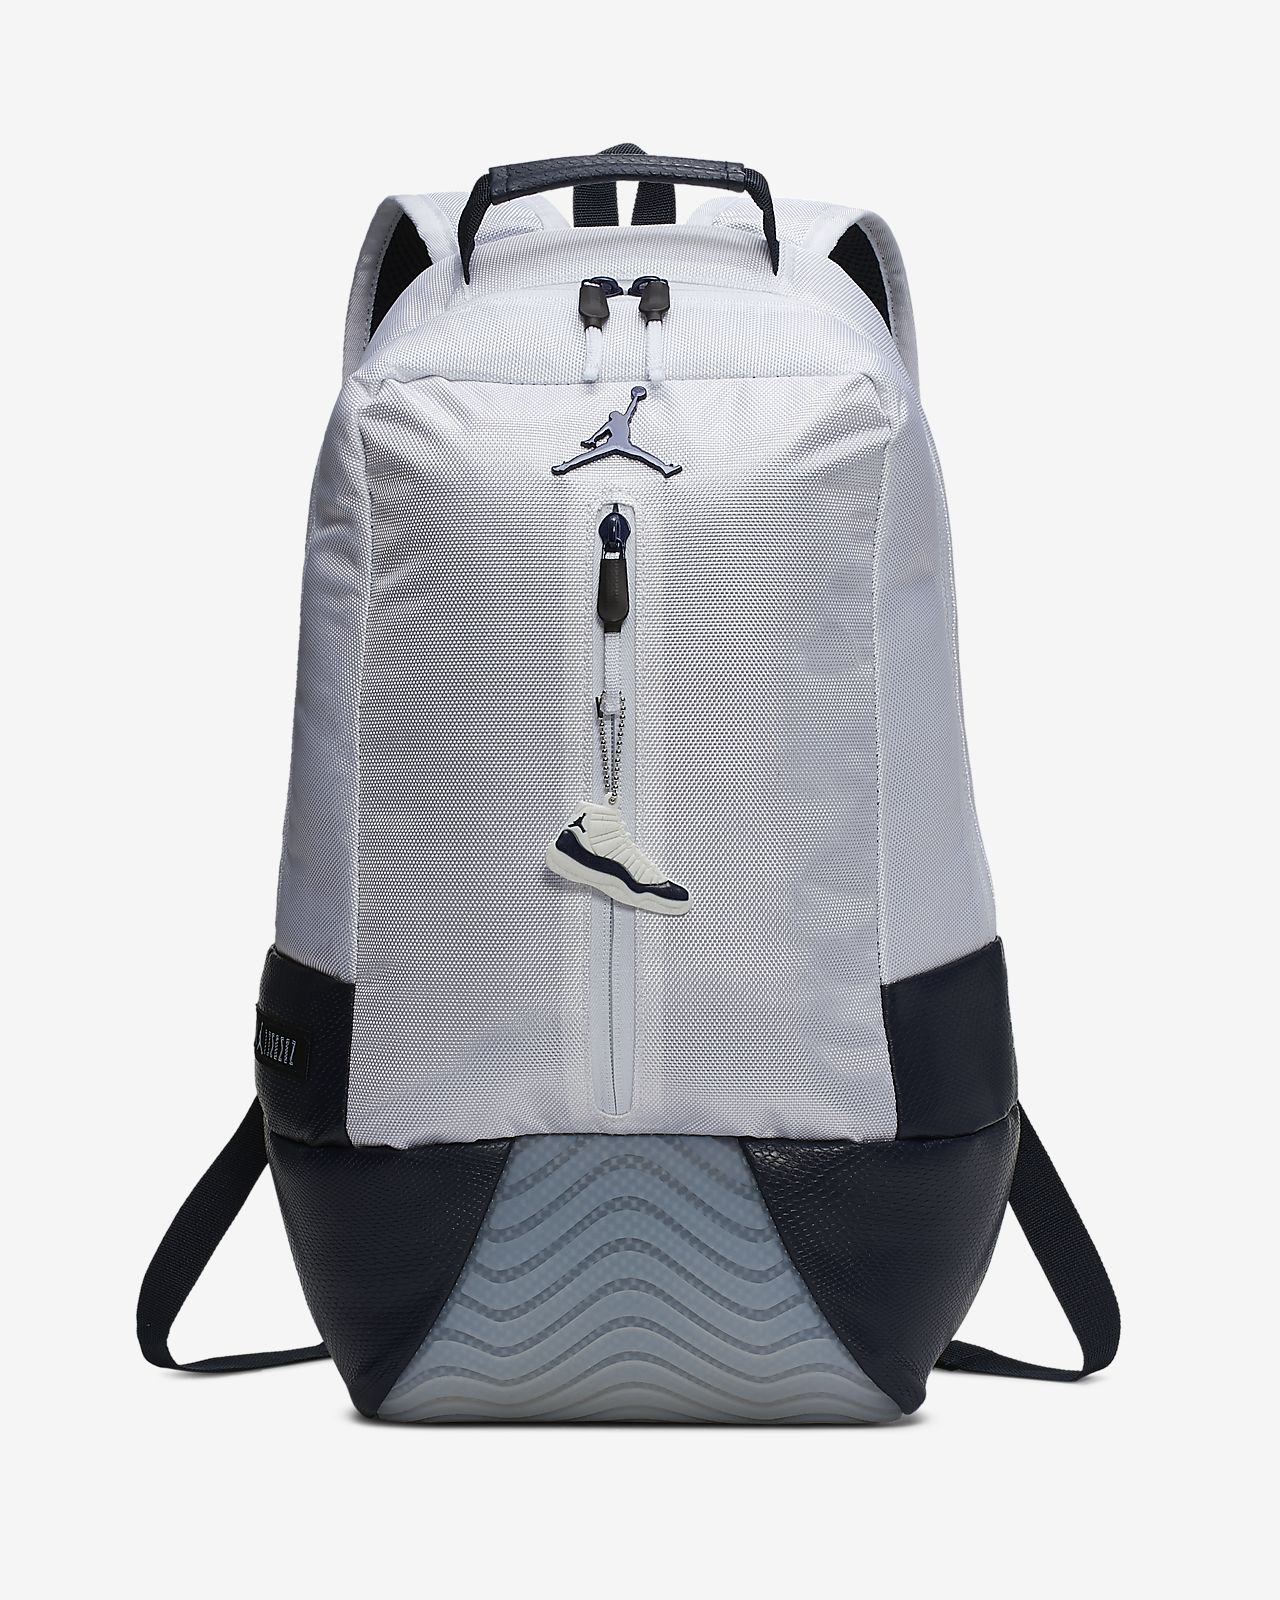 831e4f5aaaeffa Low Resolution Jordan Retro 11 Backpack Jordan Retro 11 Backpack